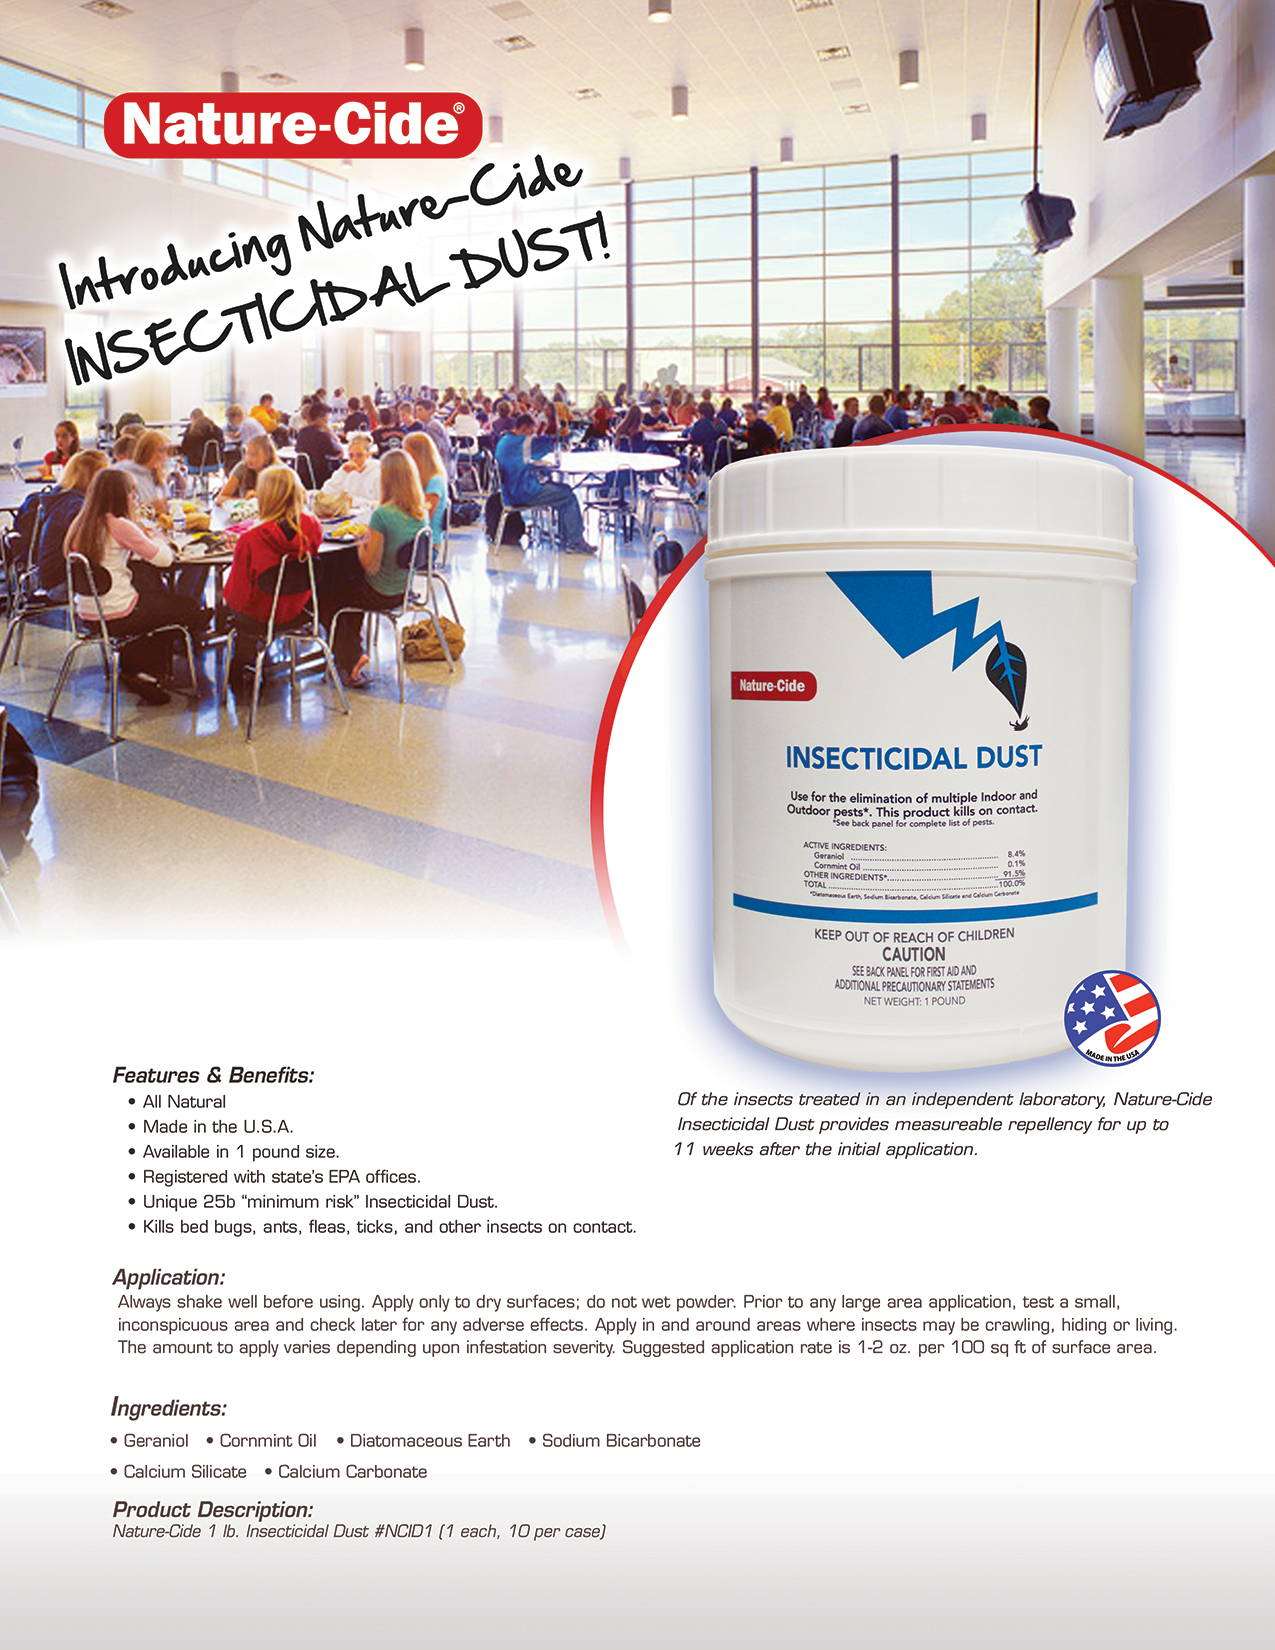 Nature-Cide Insecticidal Dust Product Info